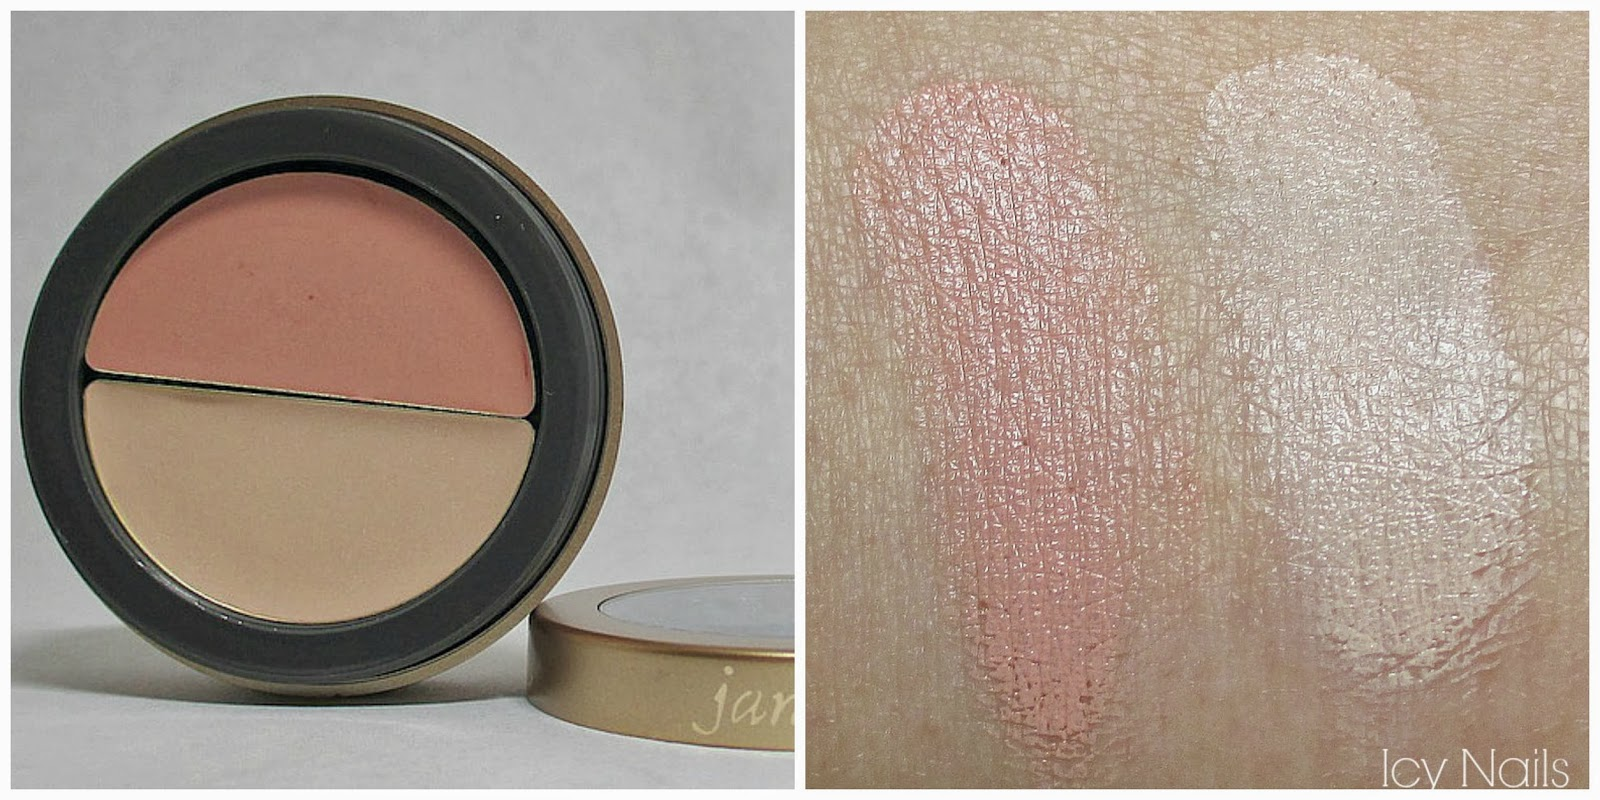 Circle/Delete Concealer by Jane Iredale #19